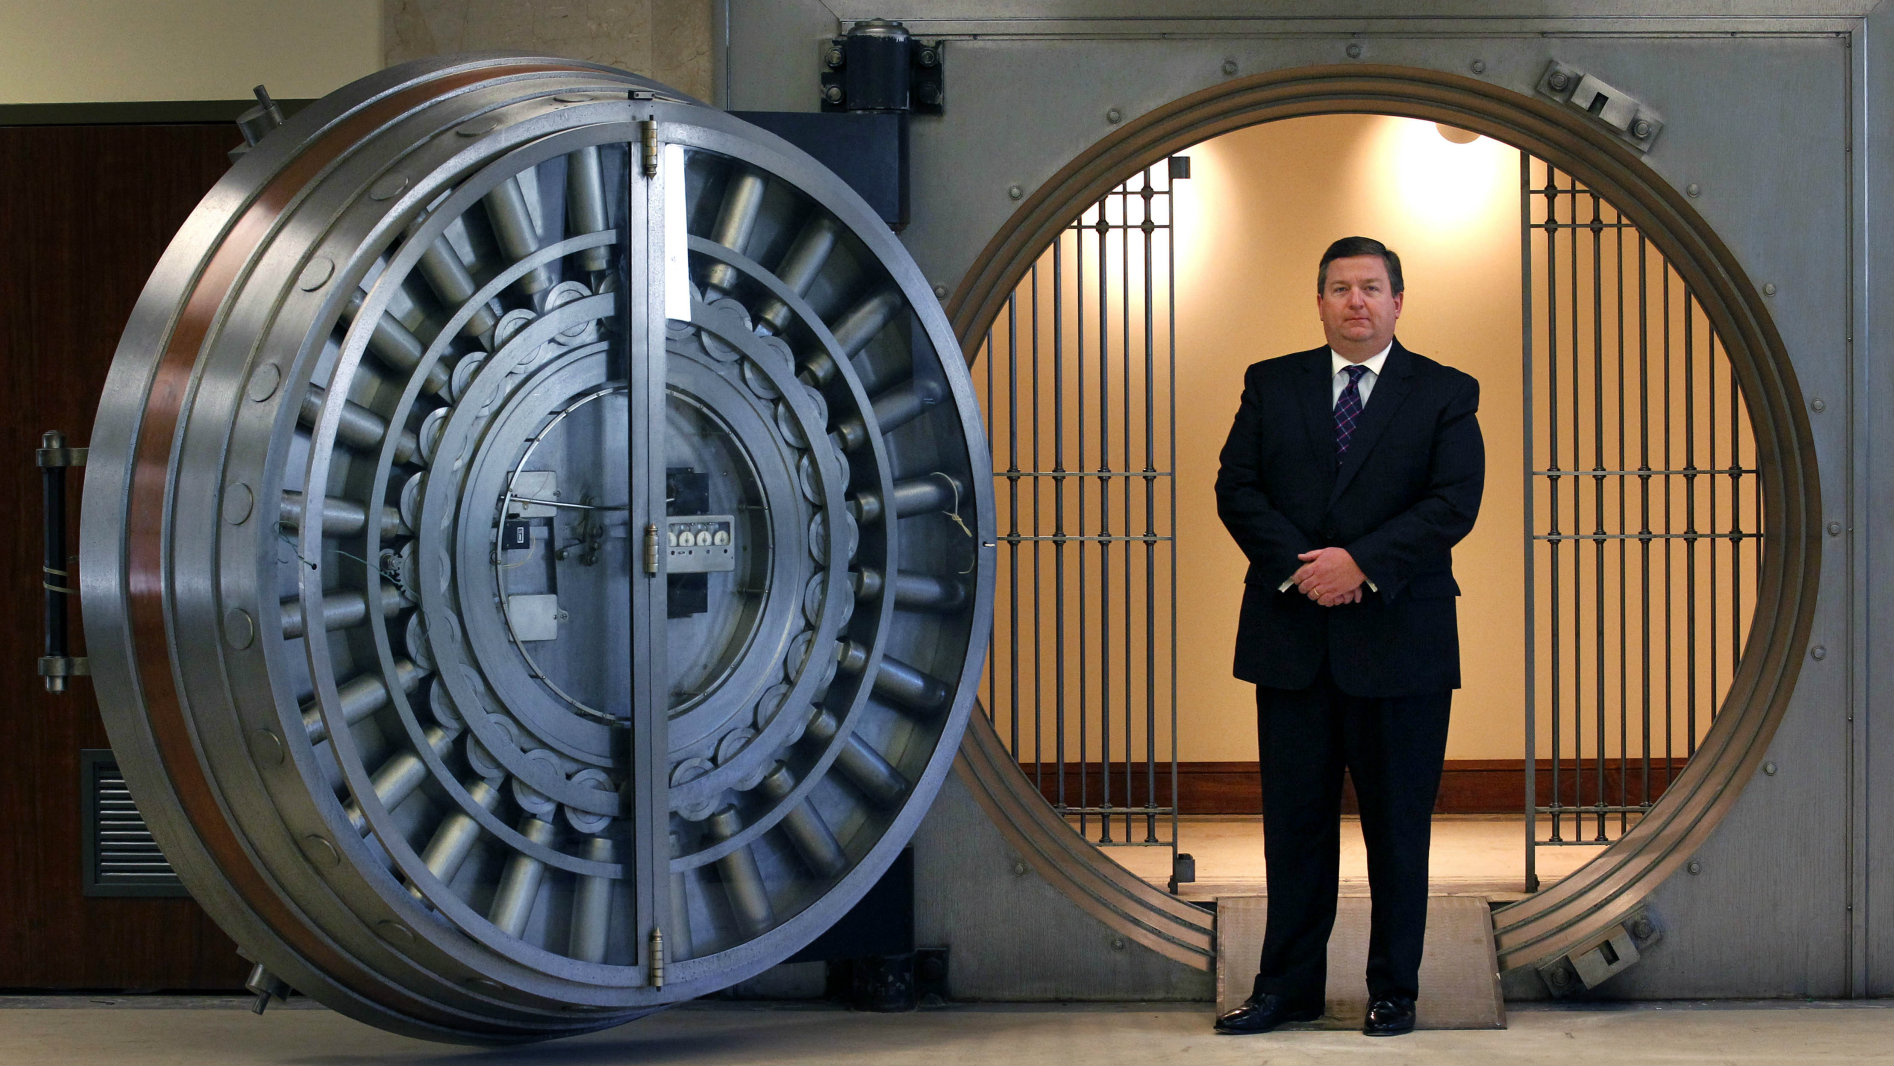 A man in front of a bank vault